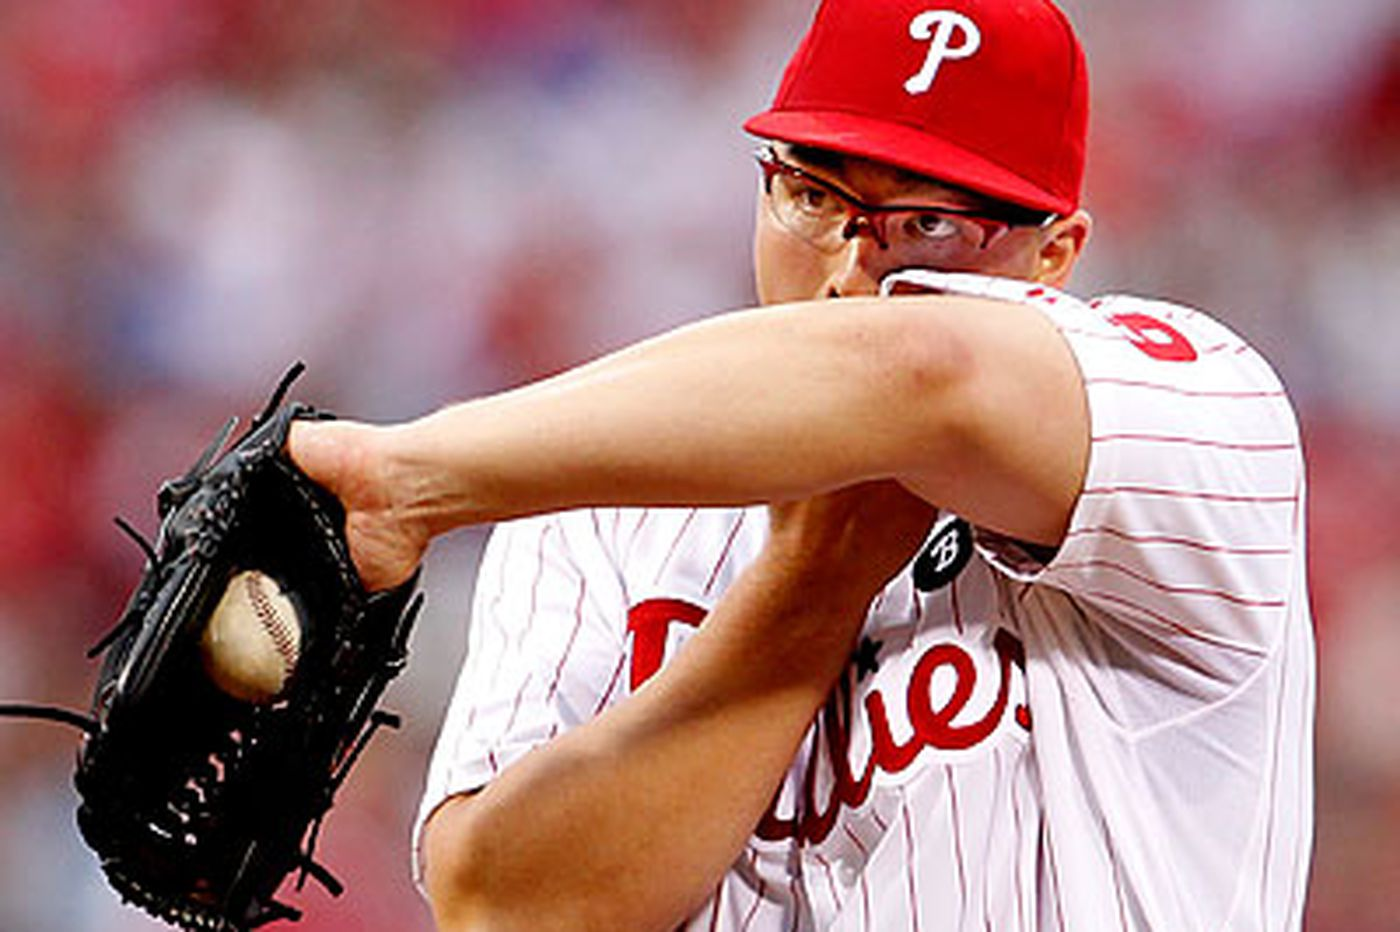 Phillies Notebook: Phillies send Worley back down after poor outing vs. Mets